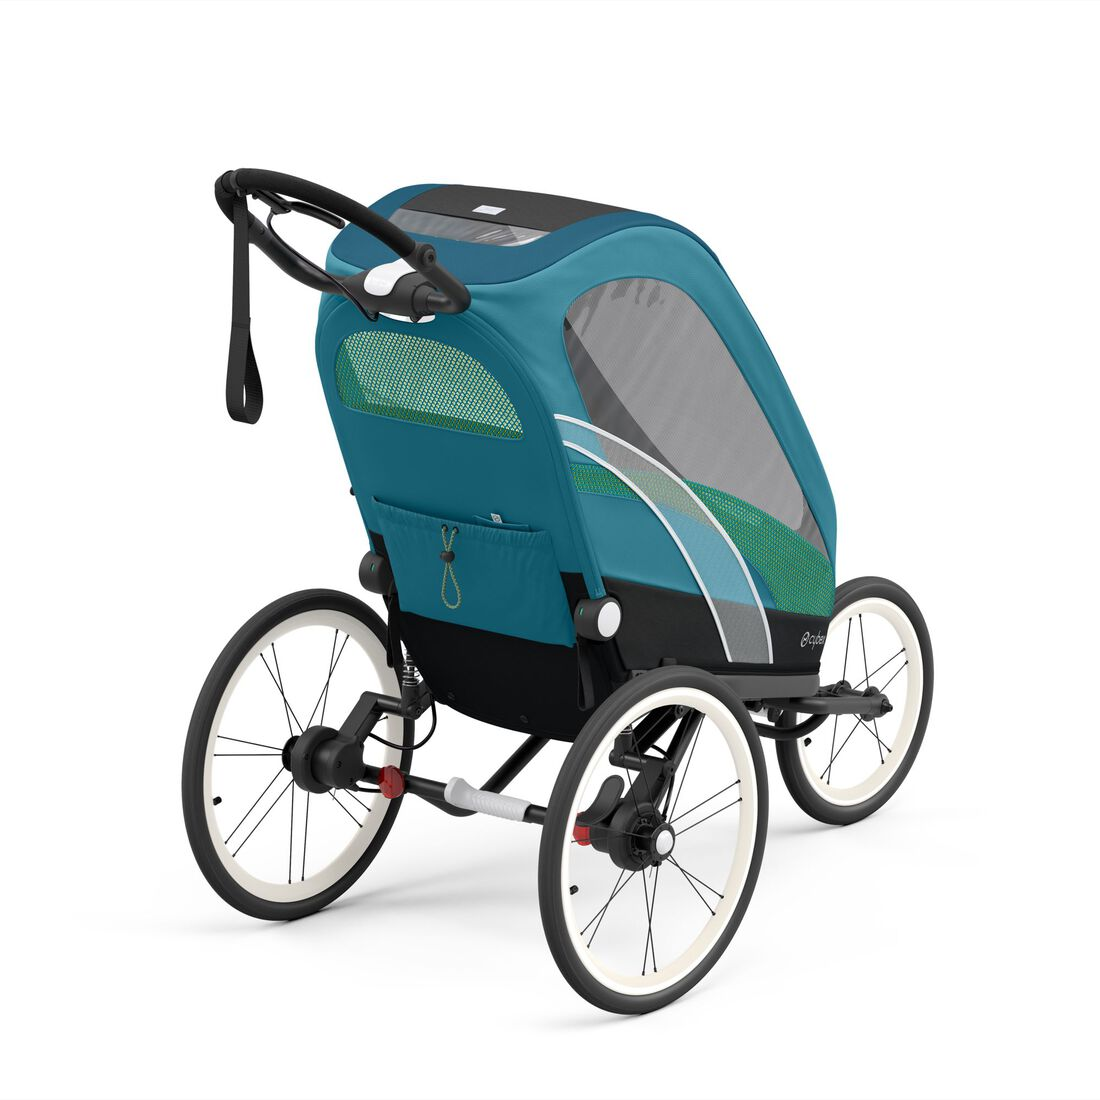 CYBEX Zeno Seat Pack - Maliblue in Maliblue large image number 5